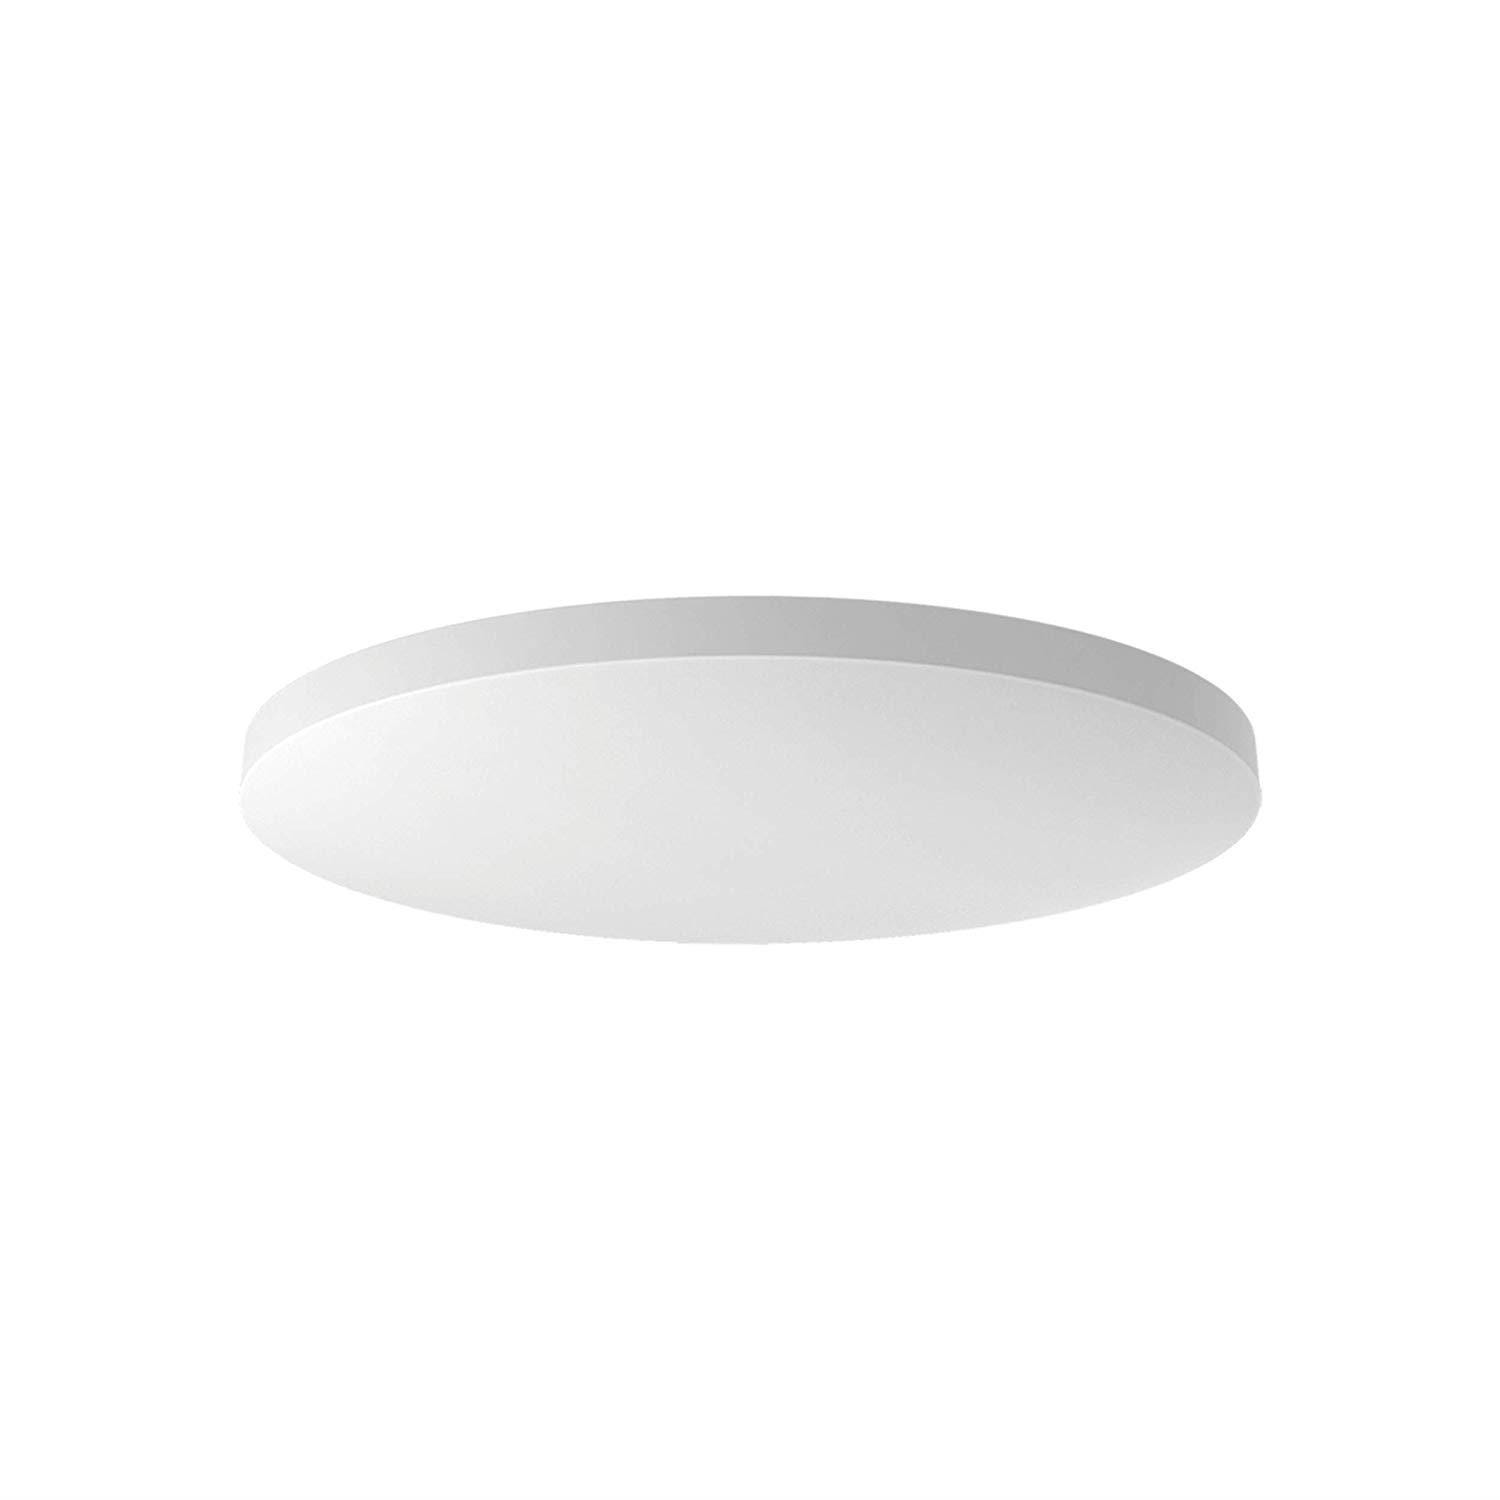 Xiaomi Mi White WiFi LED Smart Ceiling Light